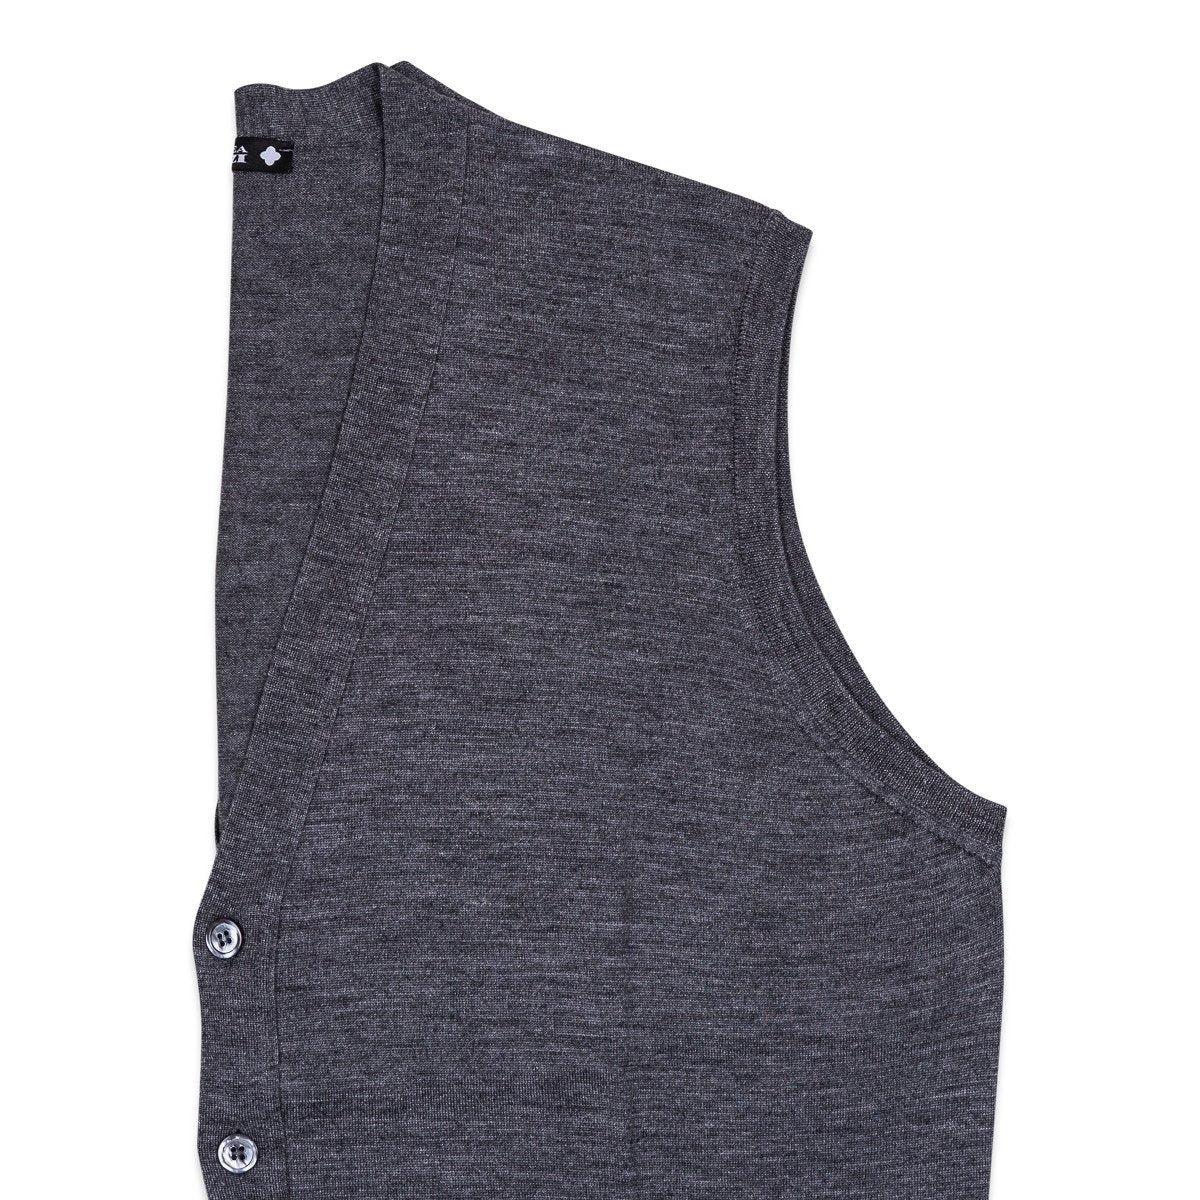 Andrea Fenzi - Vest, Grey Knitted, Knitwear | NEW TAILOR Webshop